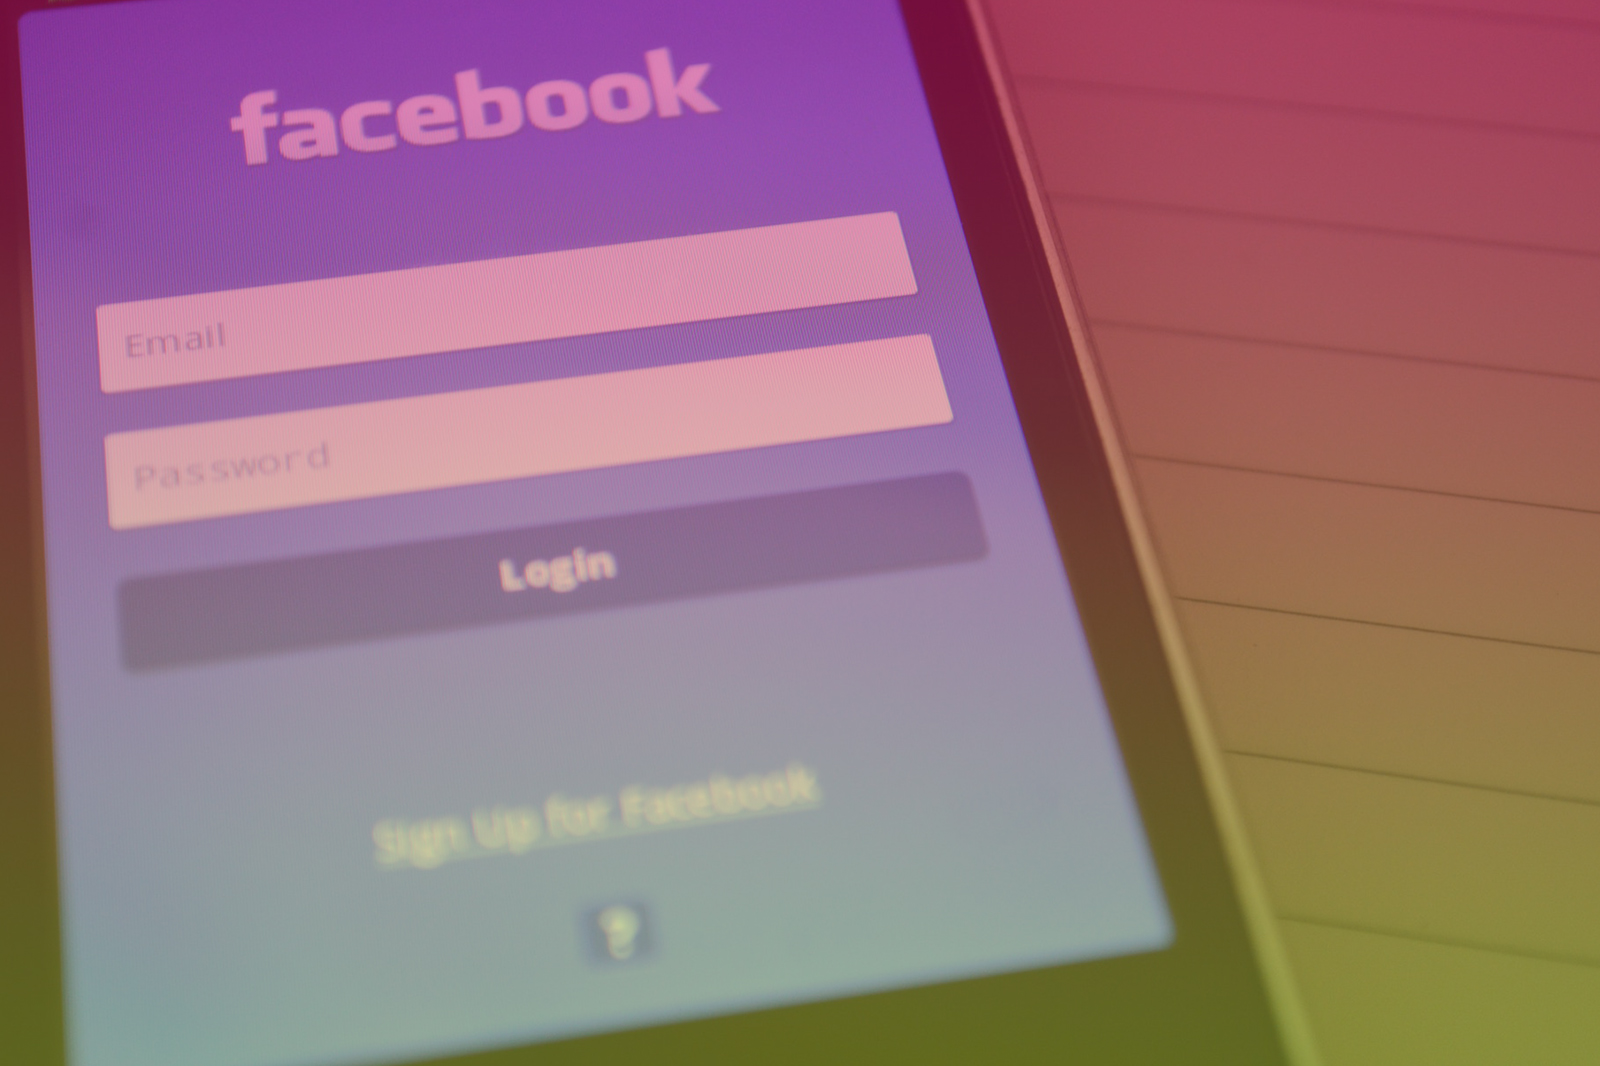 Facebook Pages for Beginners